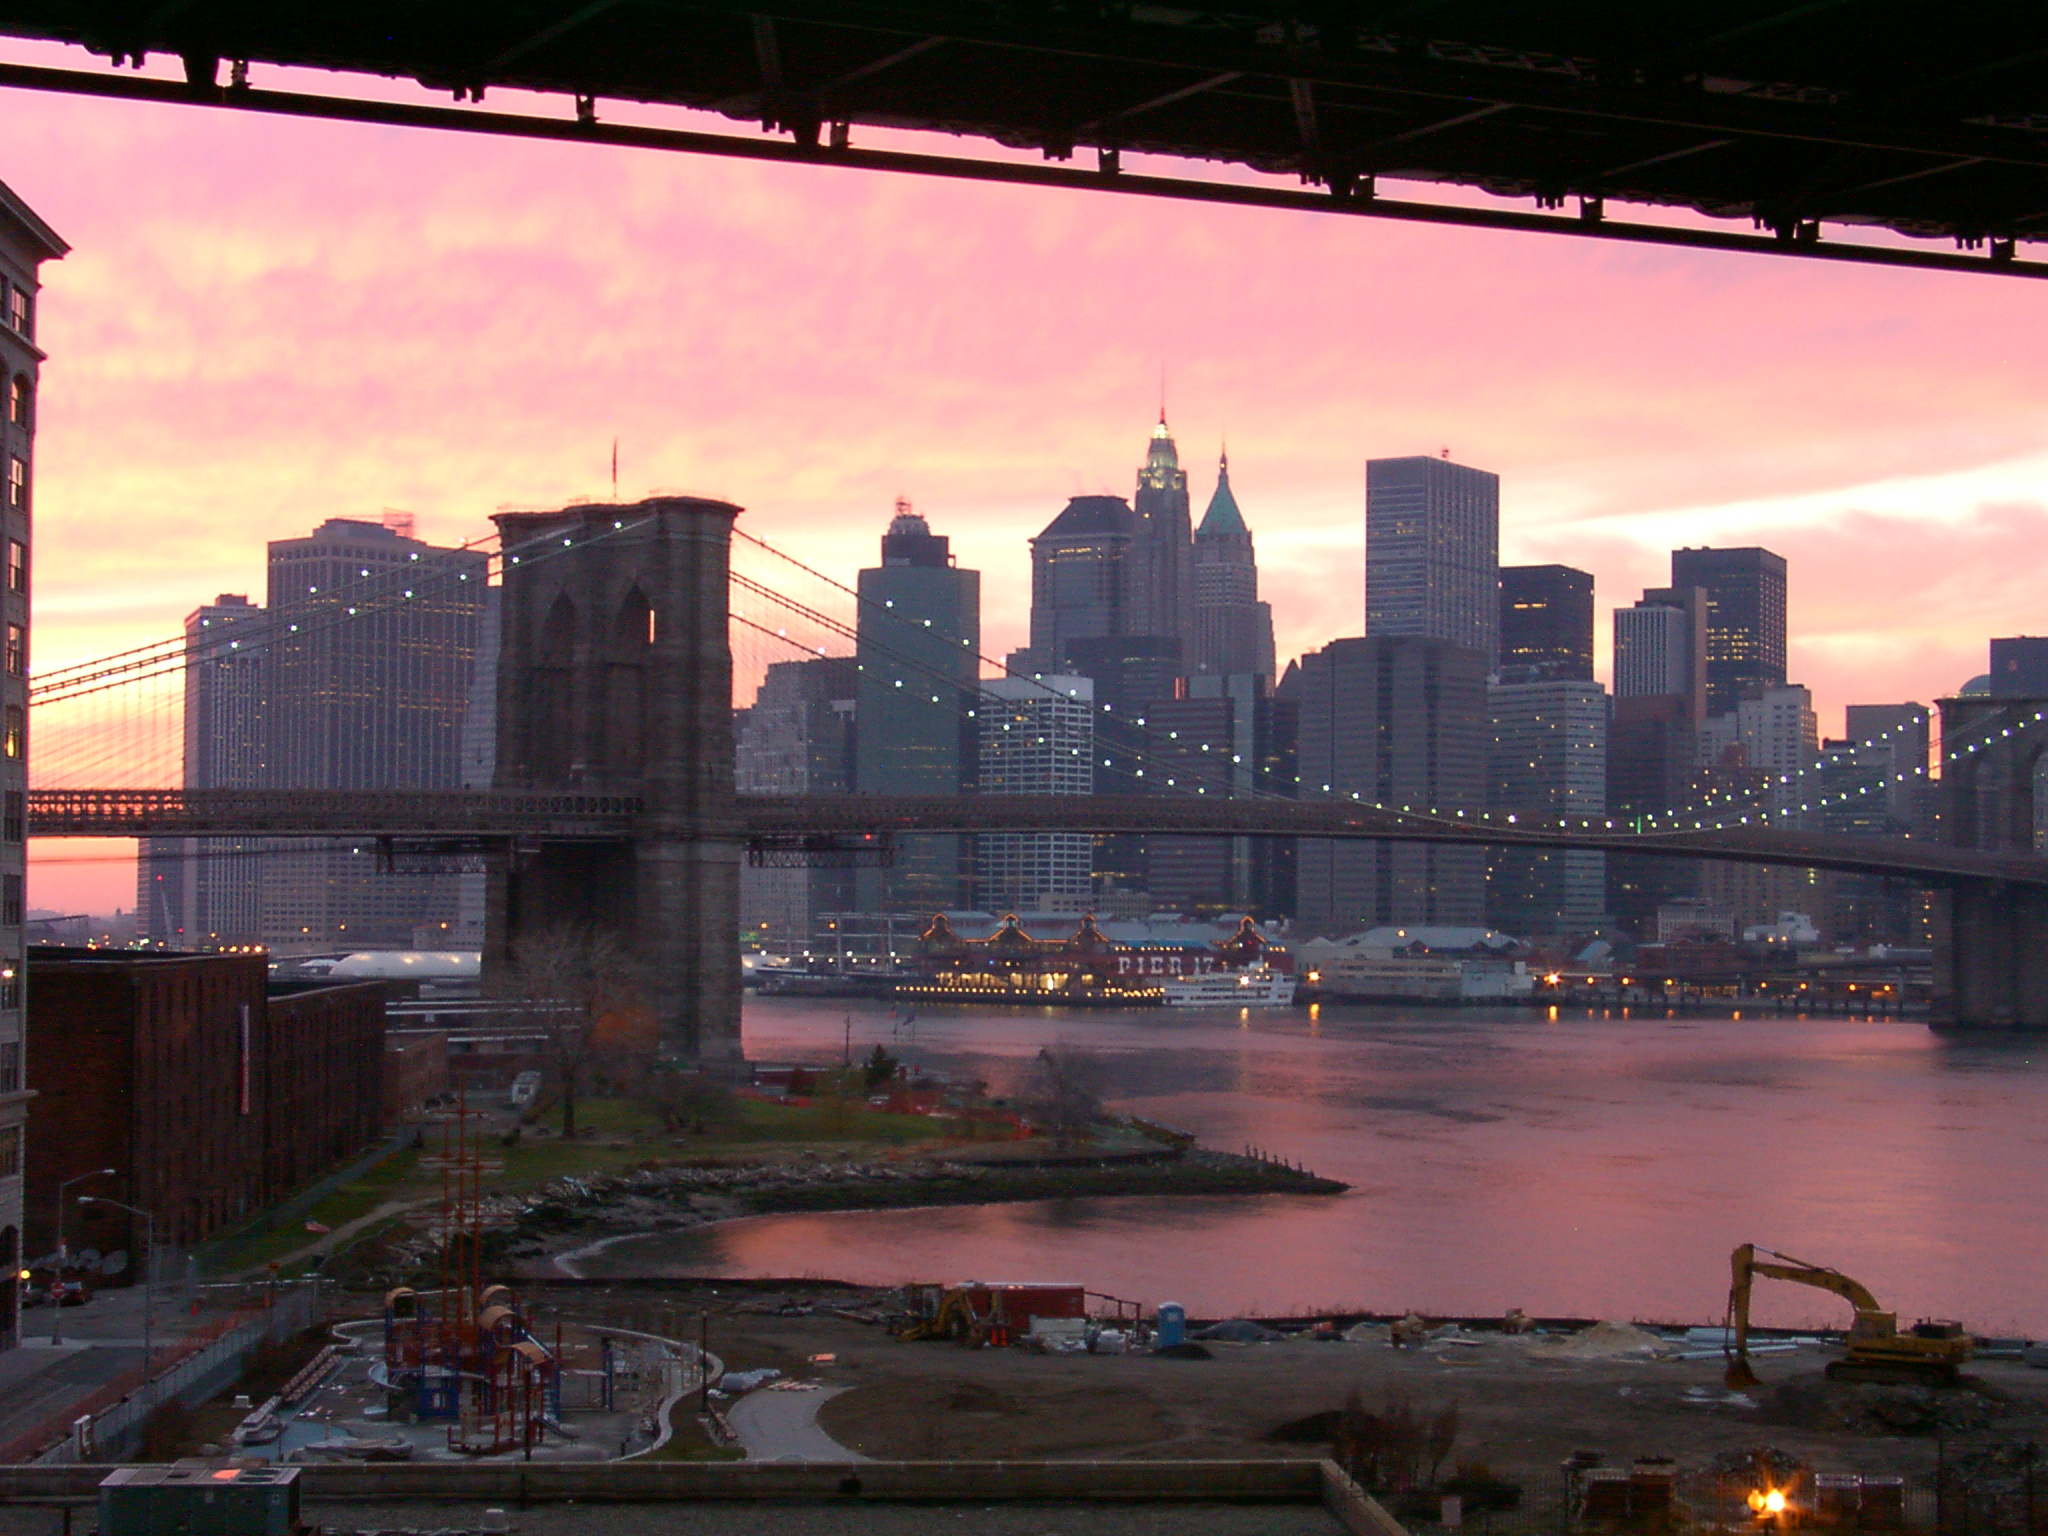 The view from my DUMBO loft Dec 2000